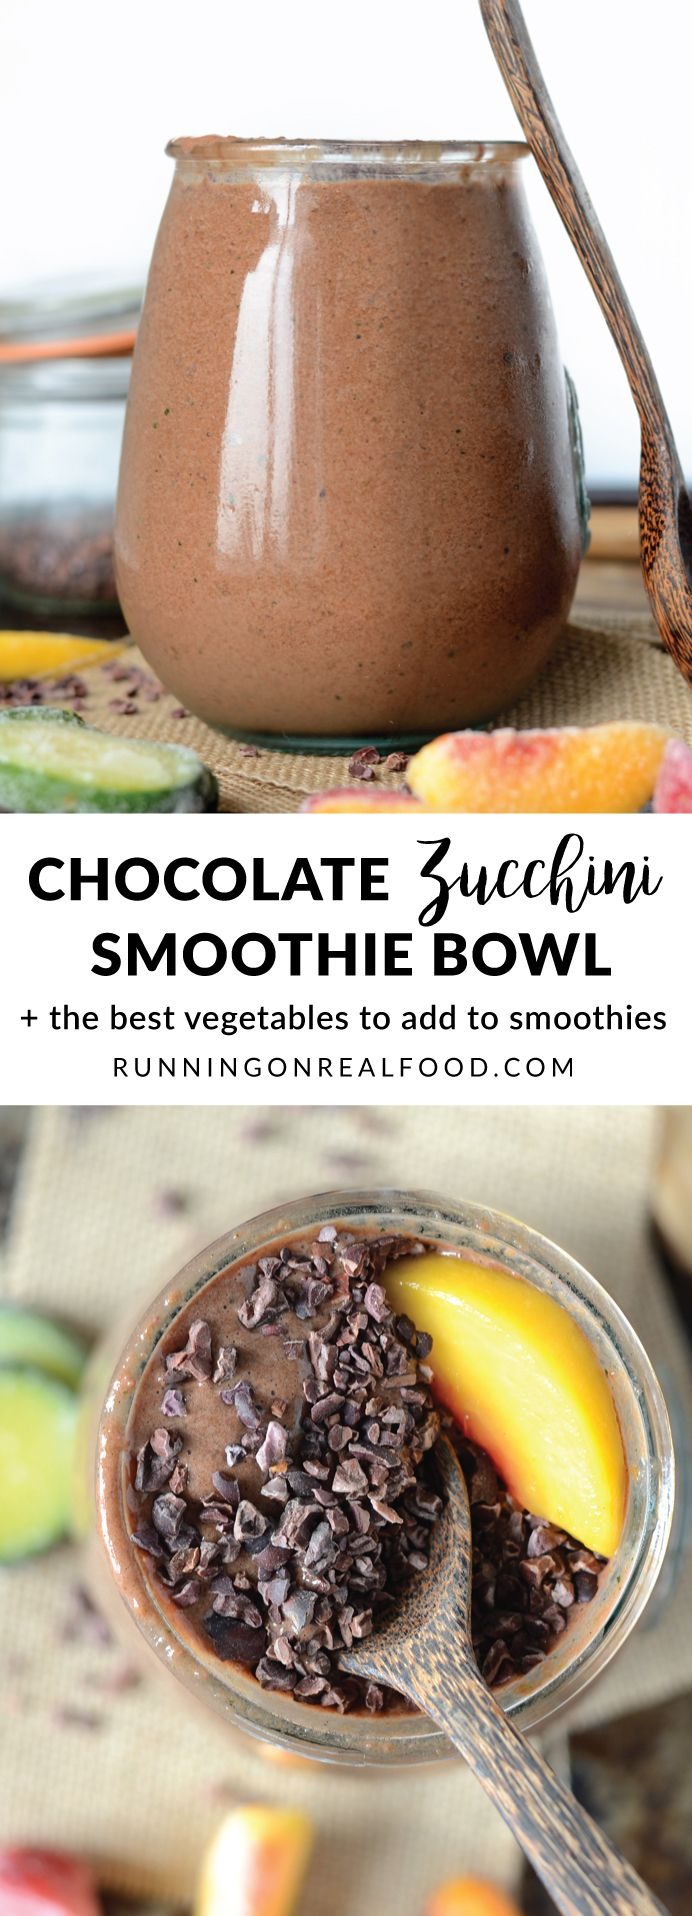 Check out the best veggies to add to smoothies plus try this thick, creamy and decadent, chocolate zucchini smoothie bowl made with simple, everyday, healthy ingredients! Vegan, low sugar, high protein.  CHECK IT OUT: http://runningonrealfood.com/best-vegetables-to-add-to-smoothies/